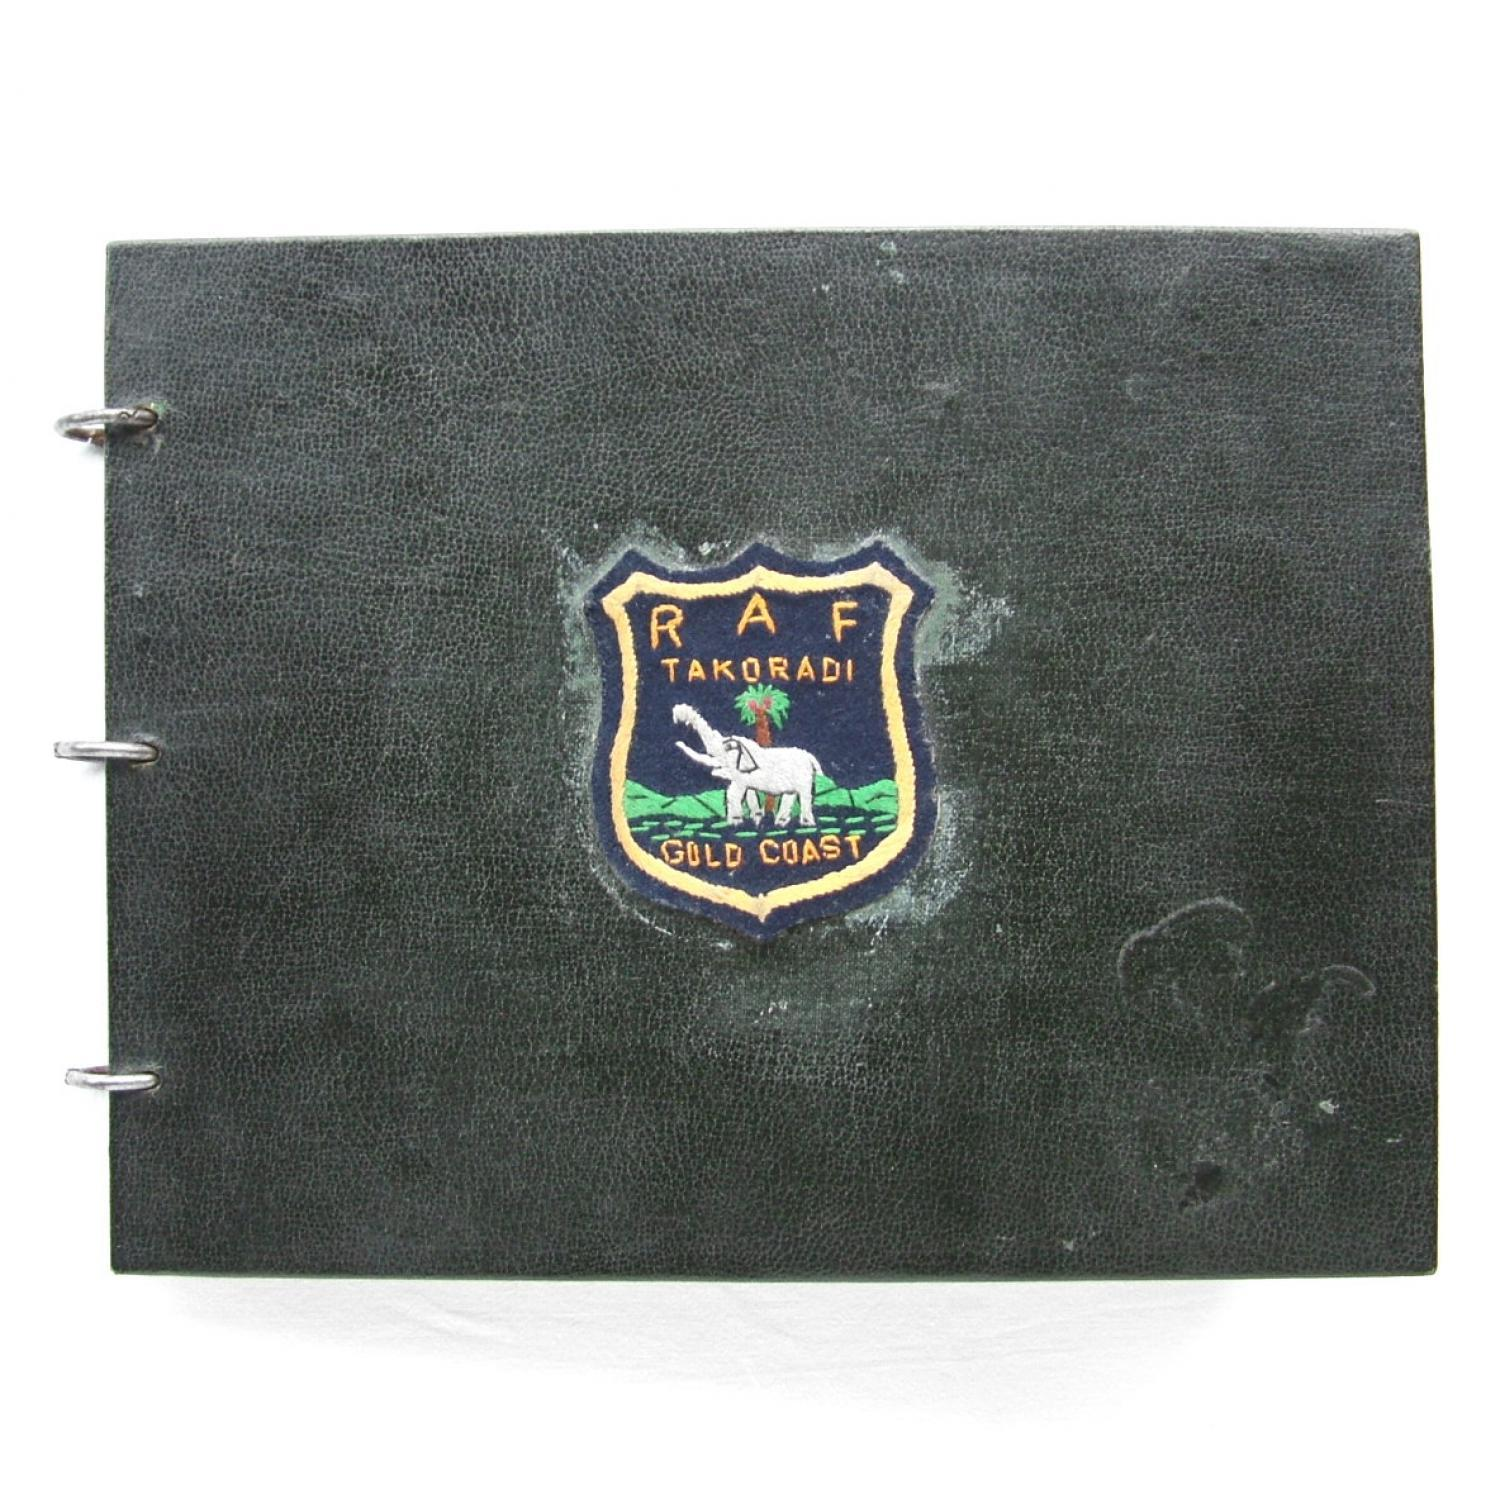 RAF Takoradi Photo Album c.1943/4